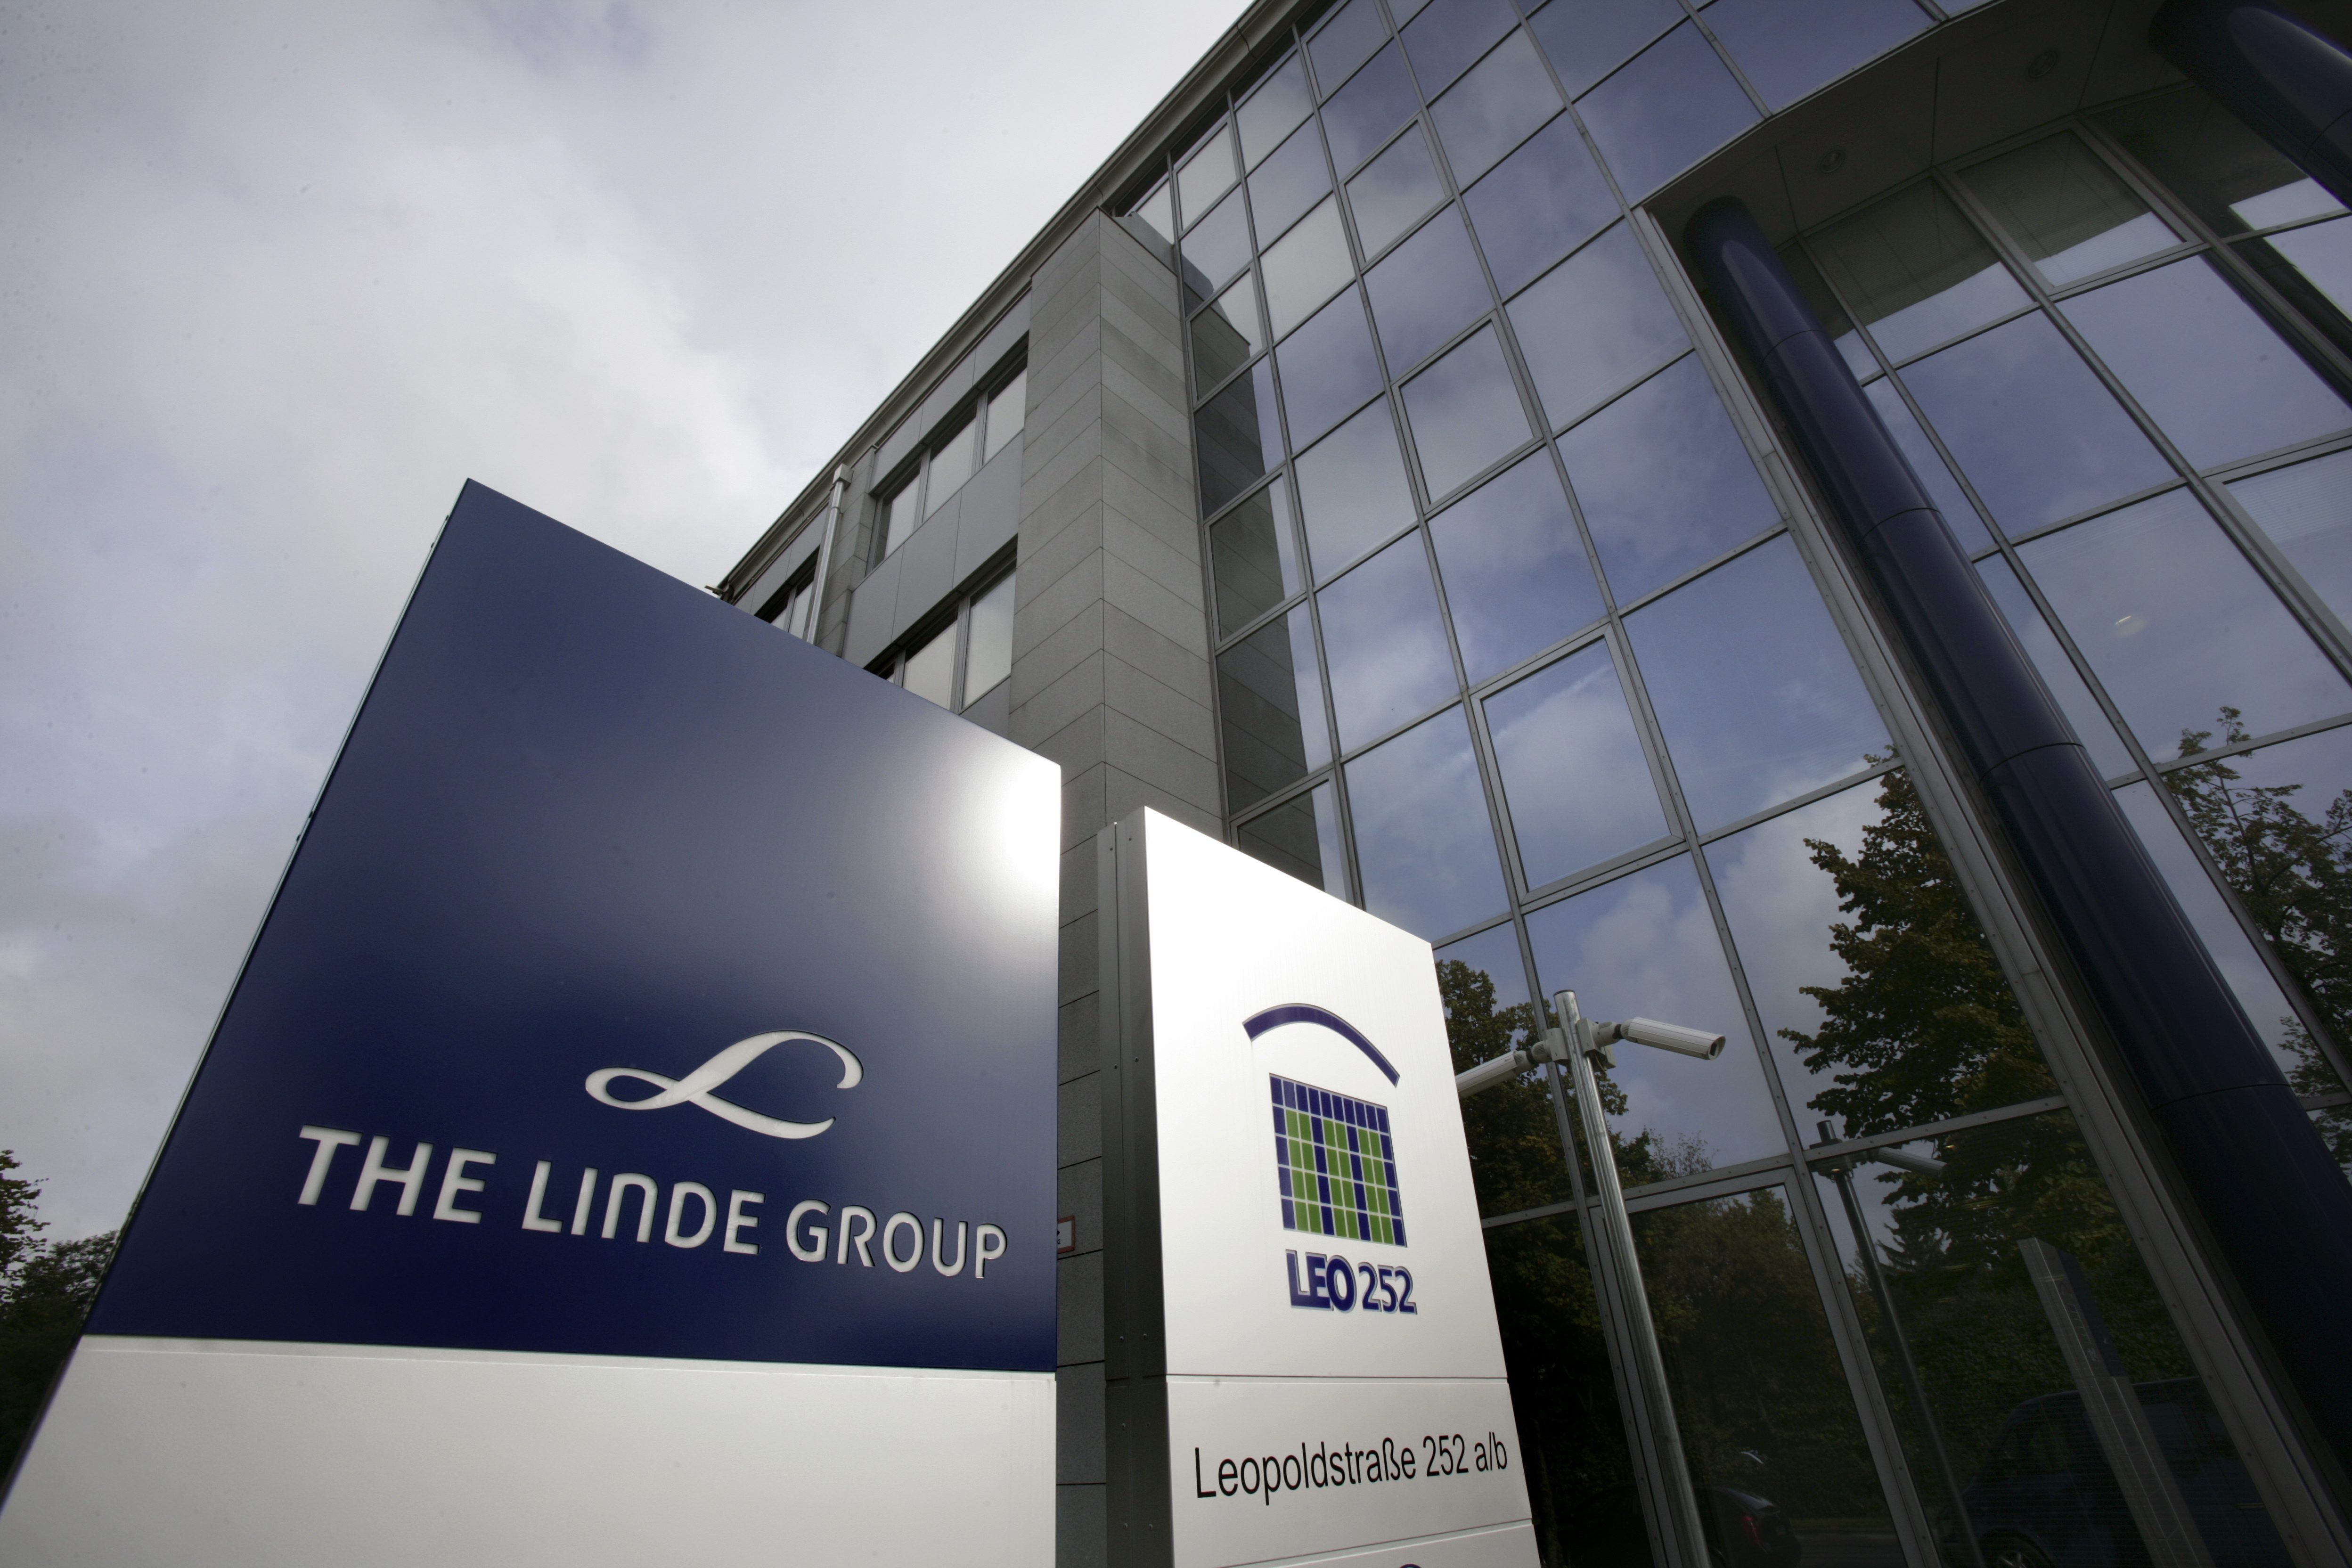 GERMANY, MUNICH, Headquarters of the Linde Group in Munich.